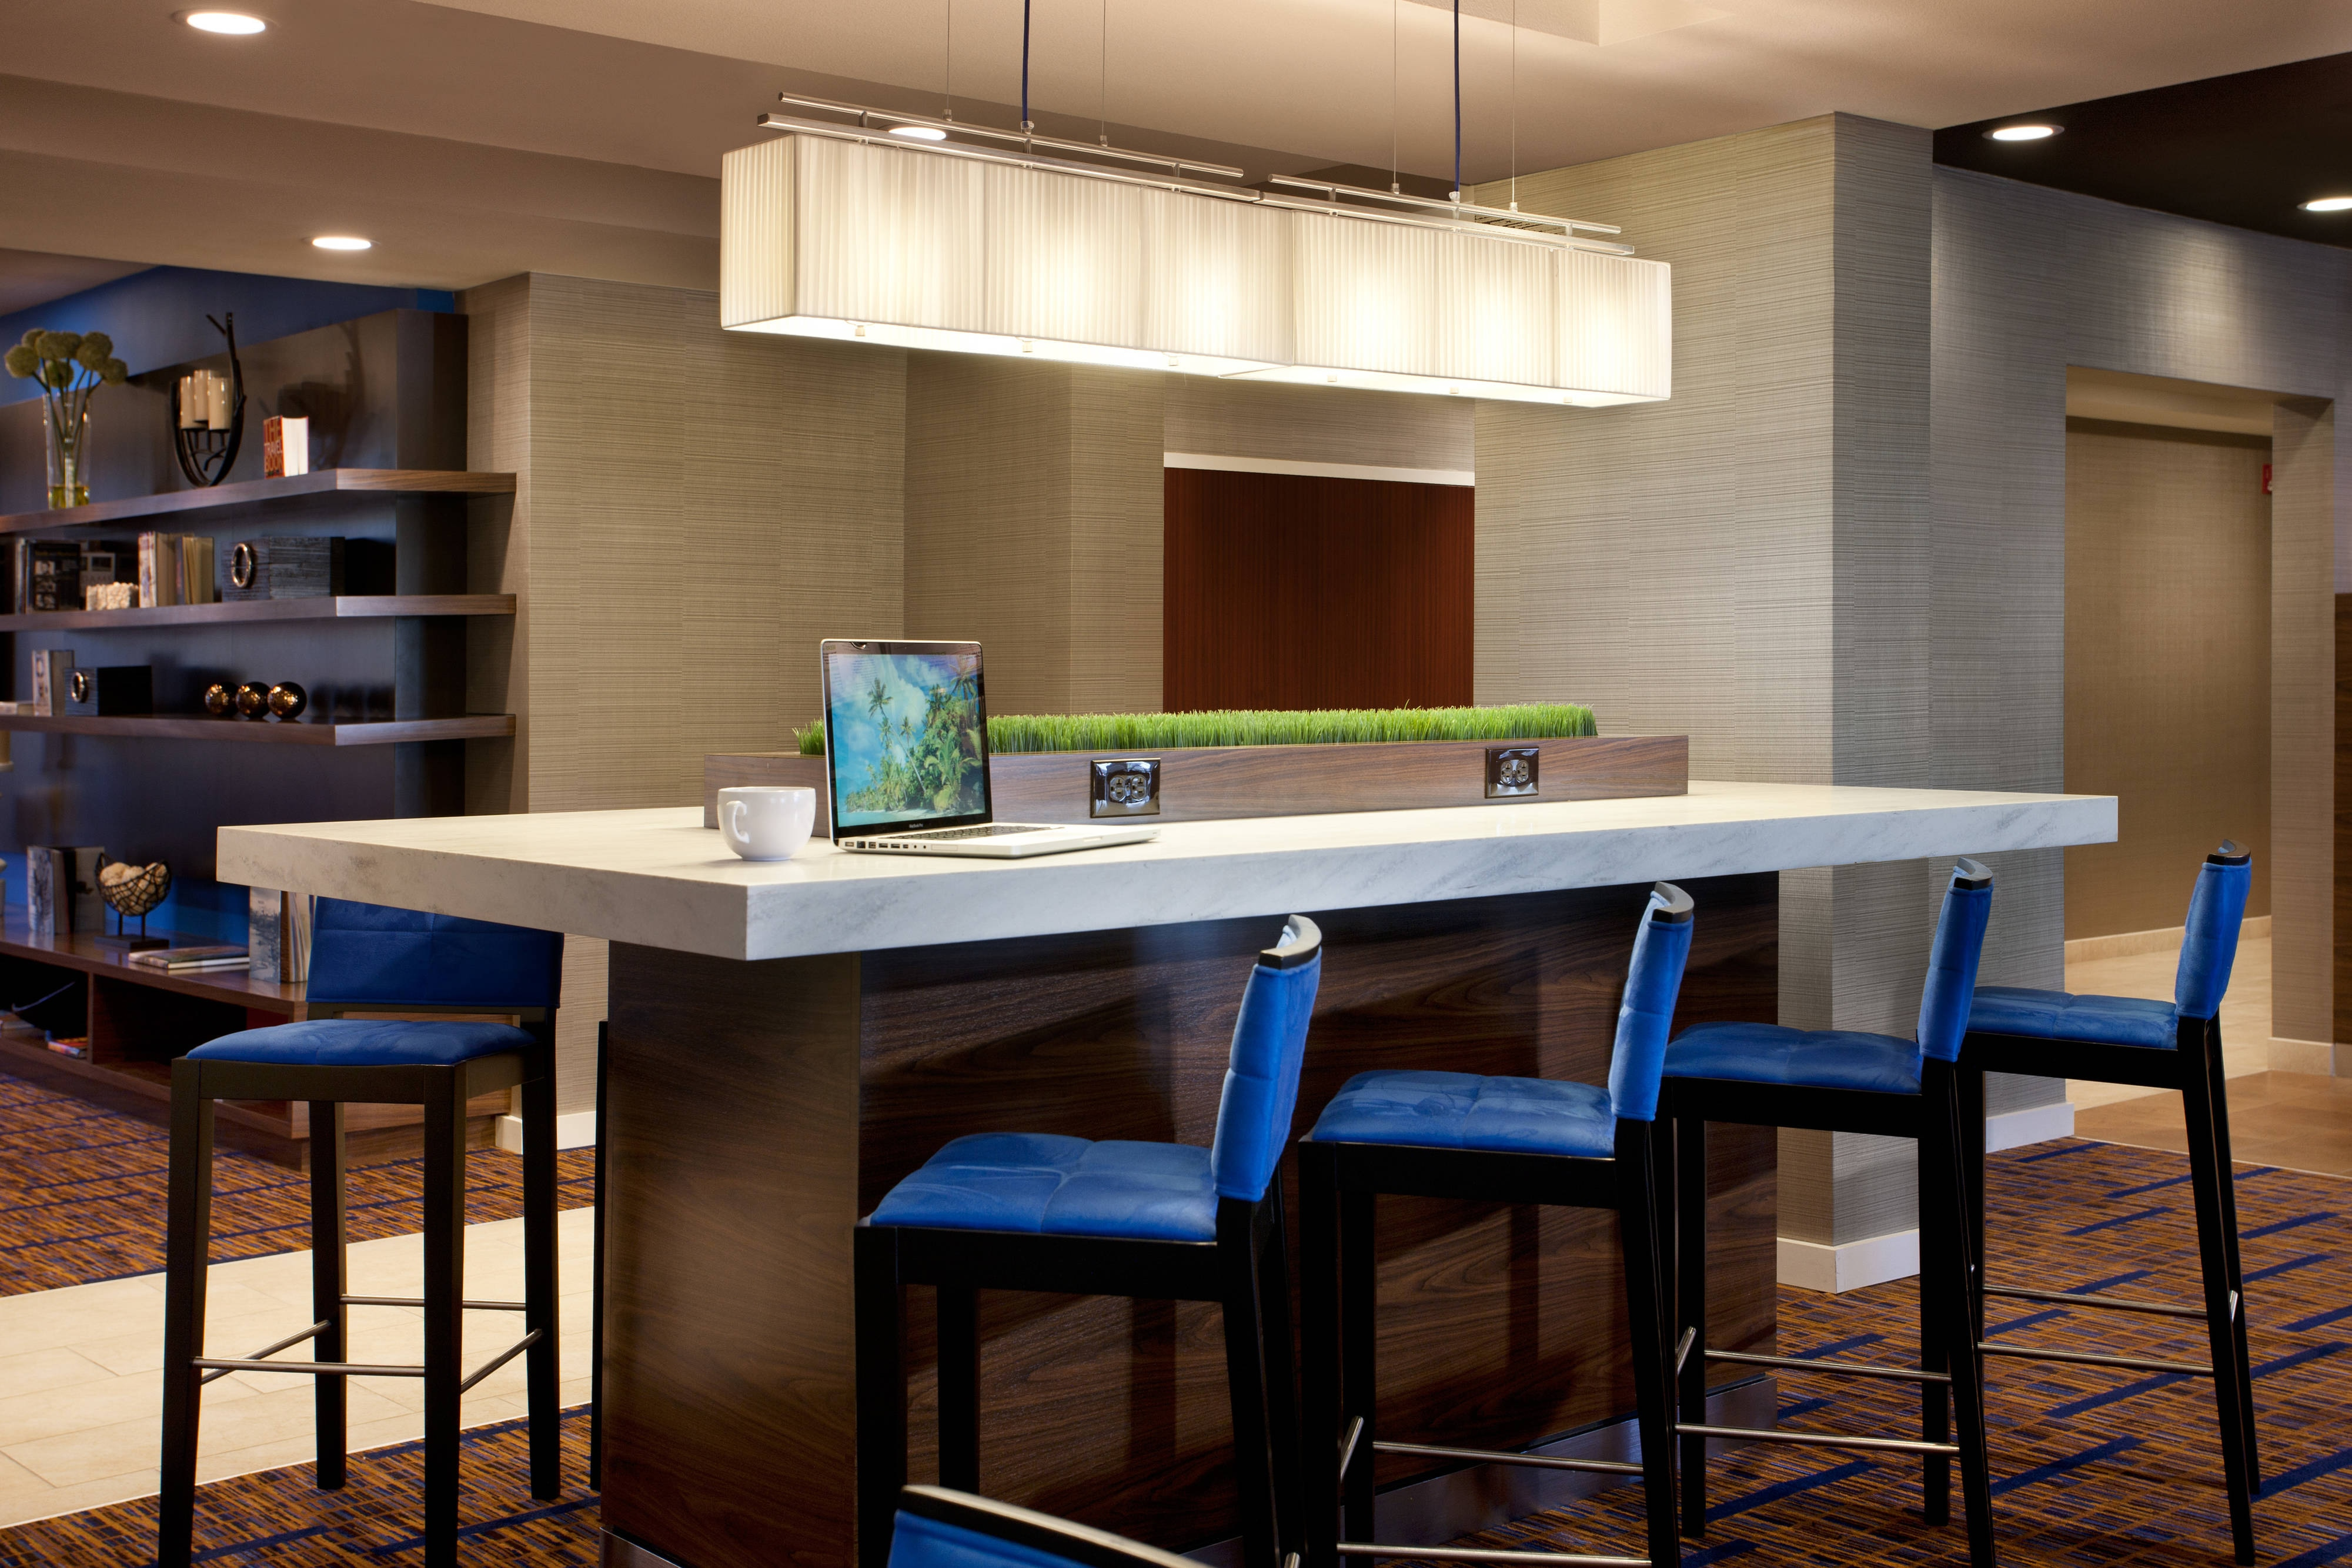 Las Vegas Summerlin Communal Table